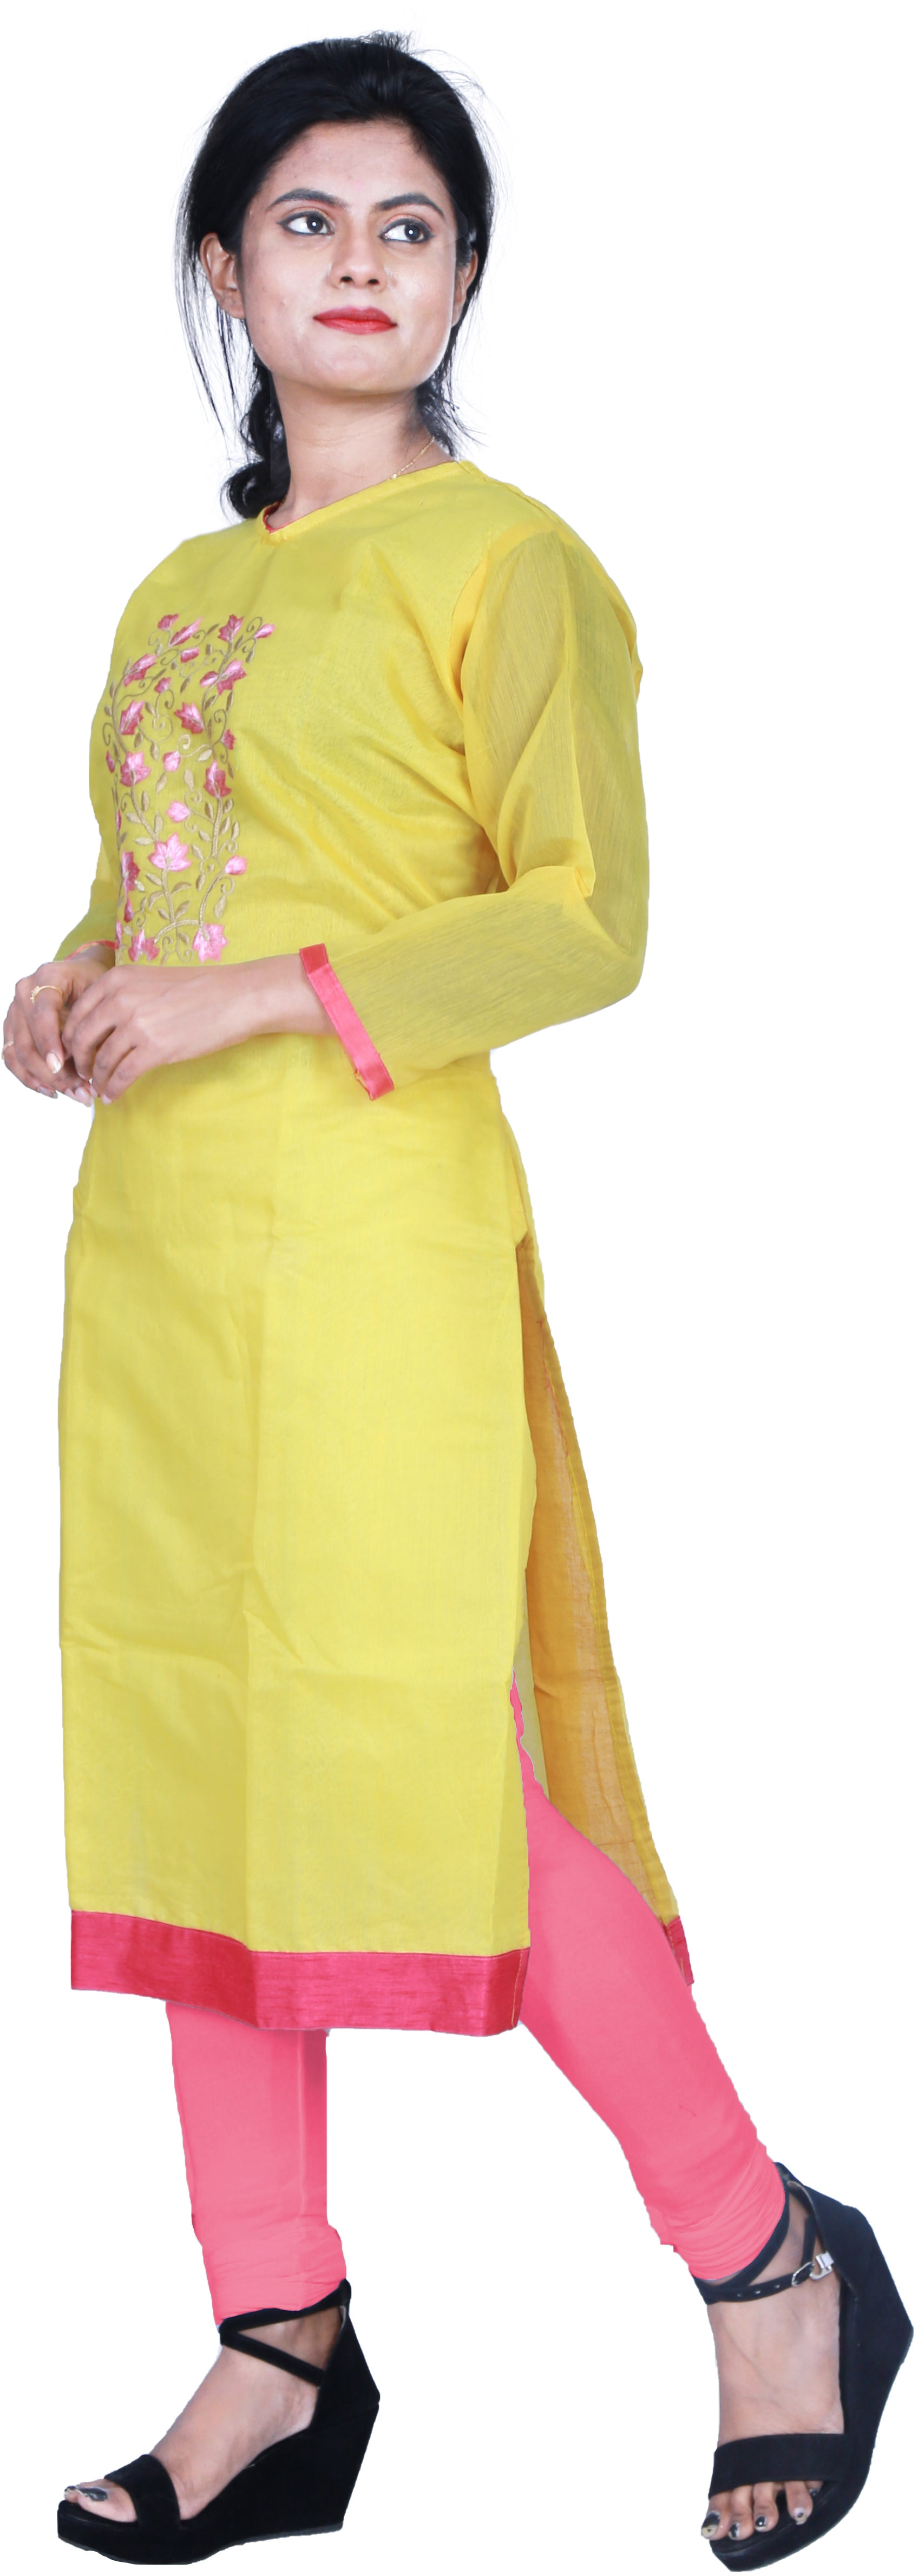 SMSAREE Yellow Designer Casual Partywear Cotton (Chanderi) Thread Hand Embroidery Work Stylish Women Kurti Kurta With Free Matching Leggings D258